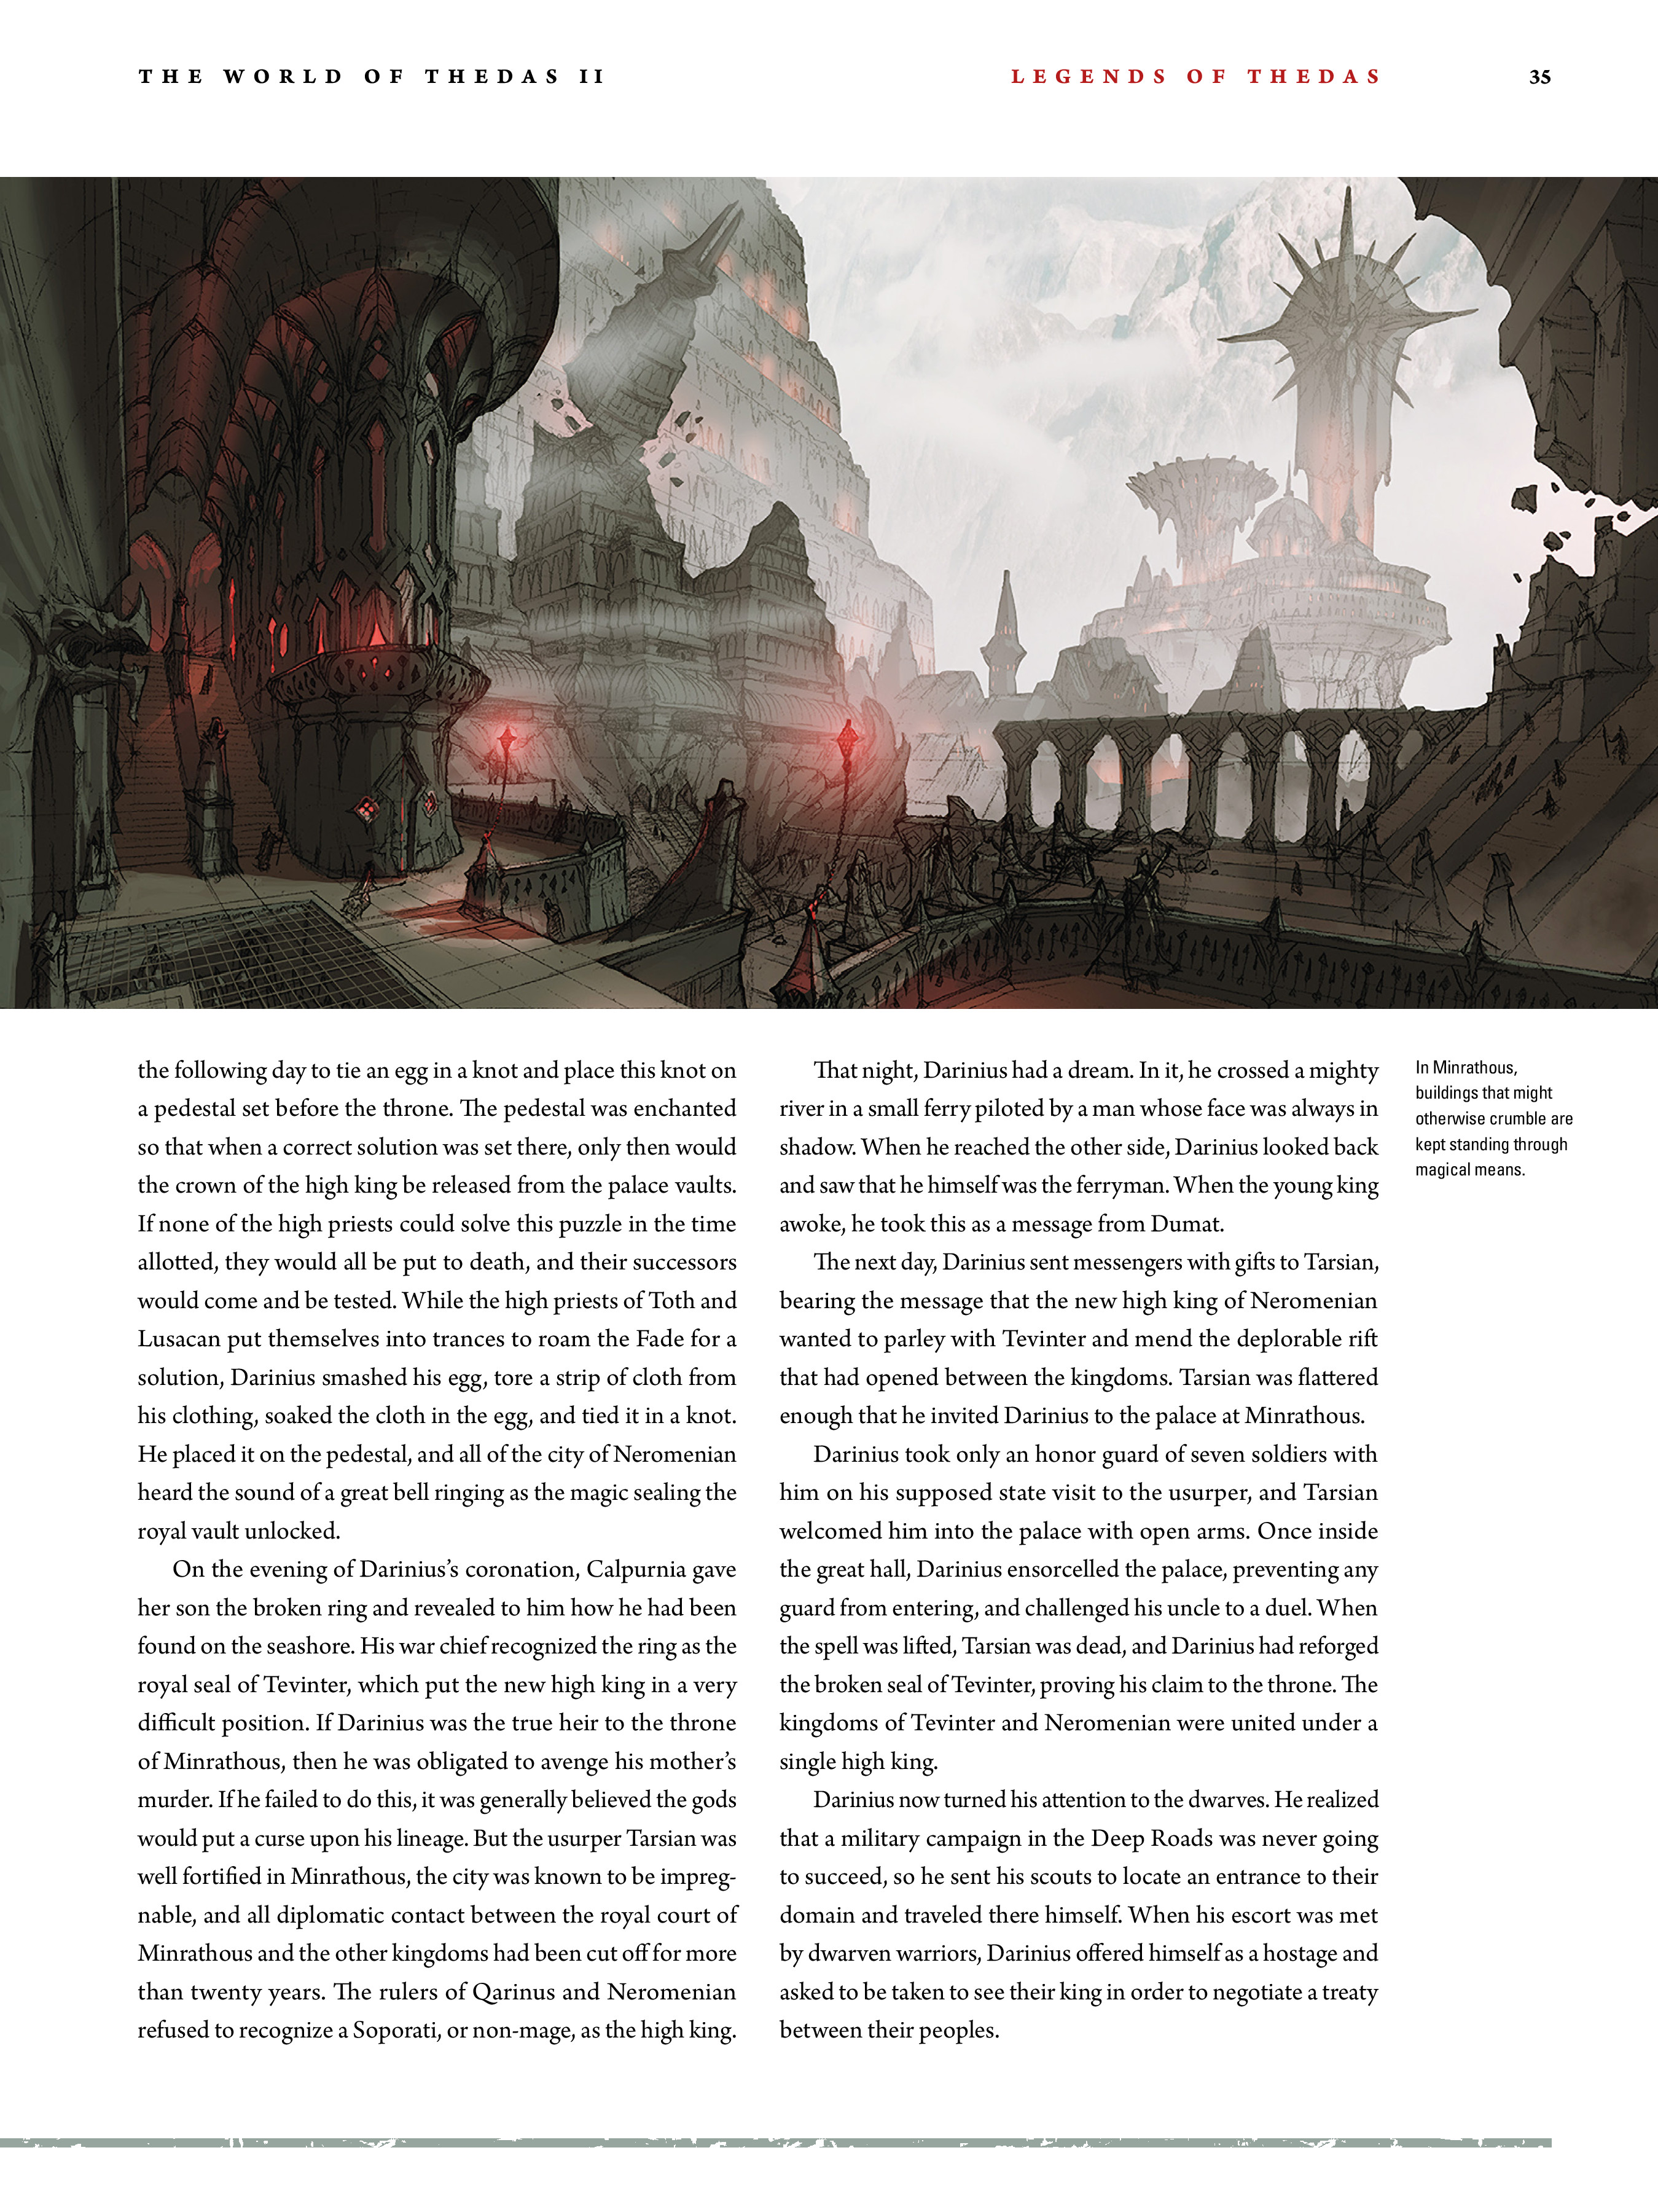 Read online Dragon Age: The World of Thedas comic -  Issue # TPB 2 - 32